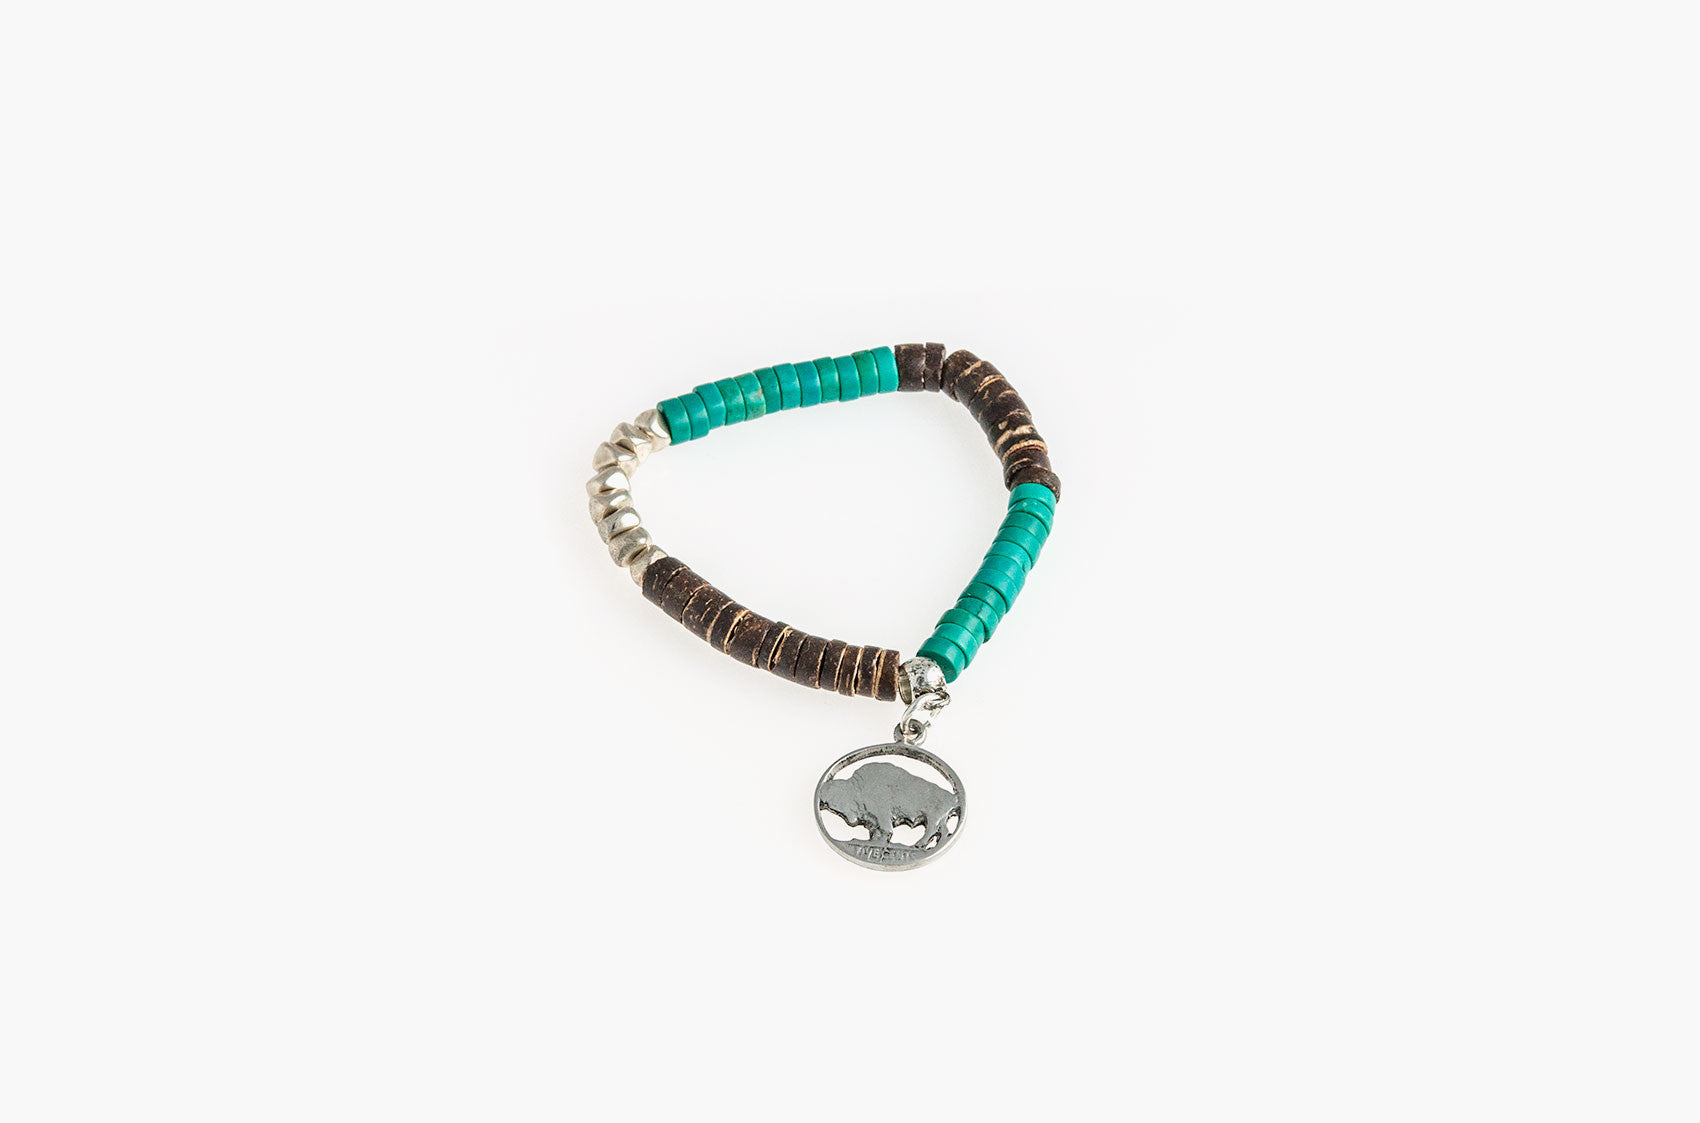 Wood, metal and turquoise coin-charm bracelet